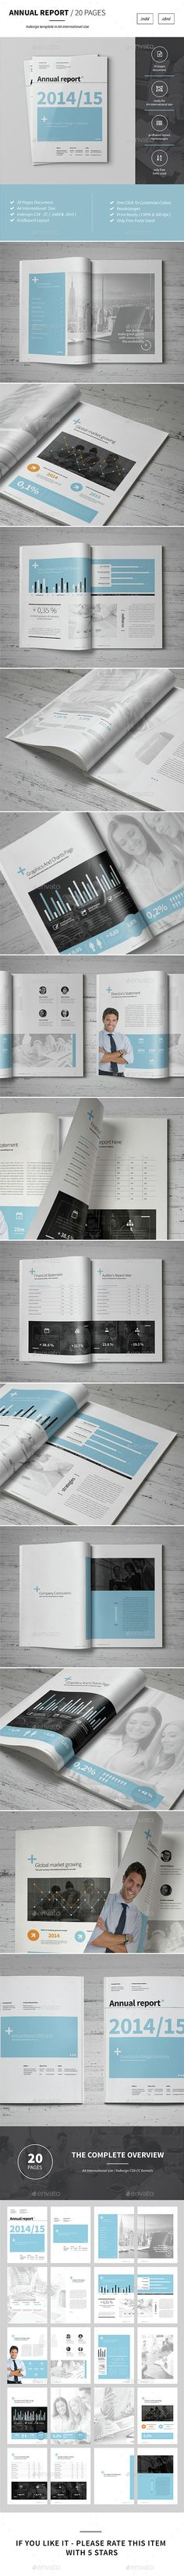 The Annual Report Template InDesign INDD Design Download Http - Annual report template indesign